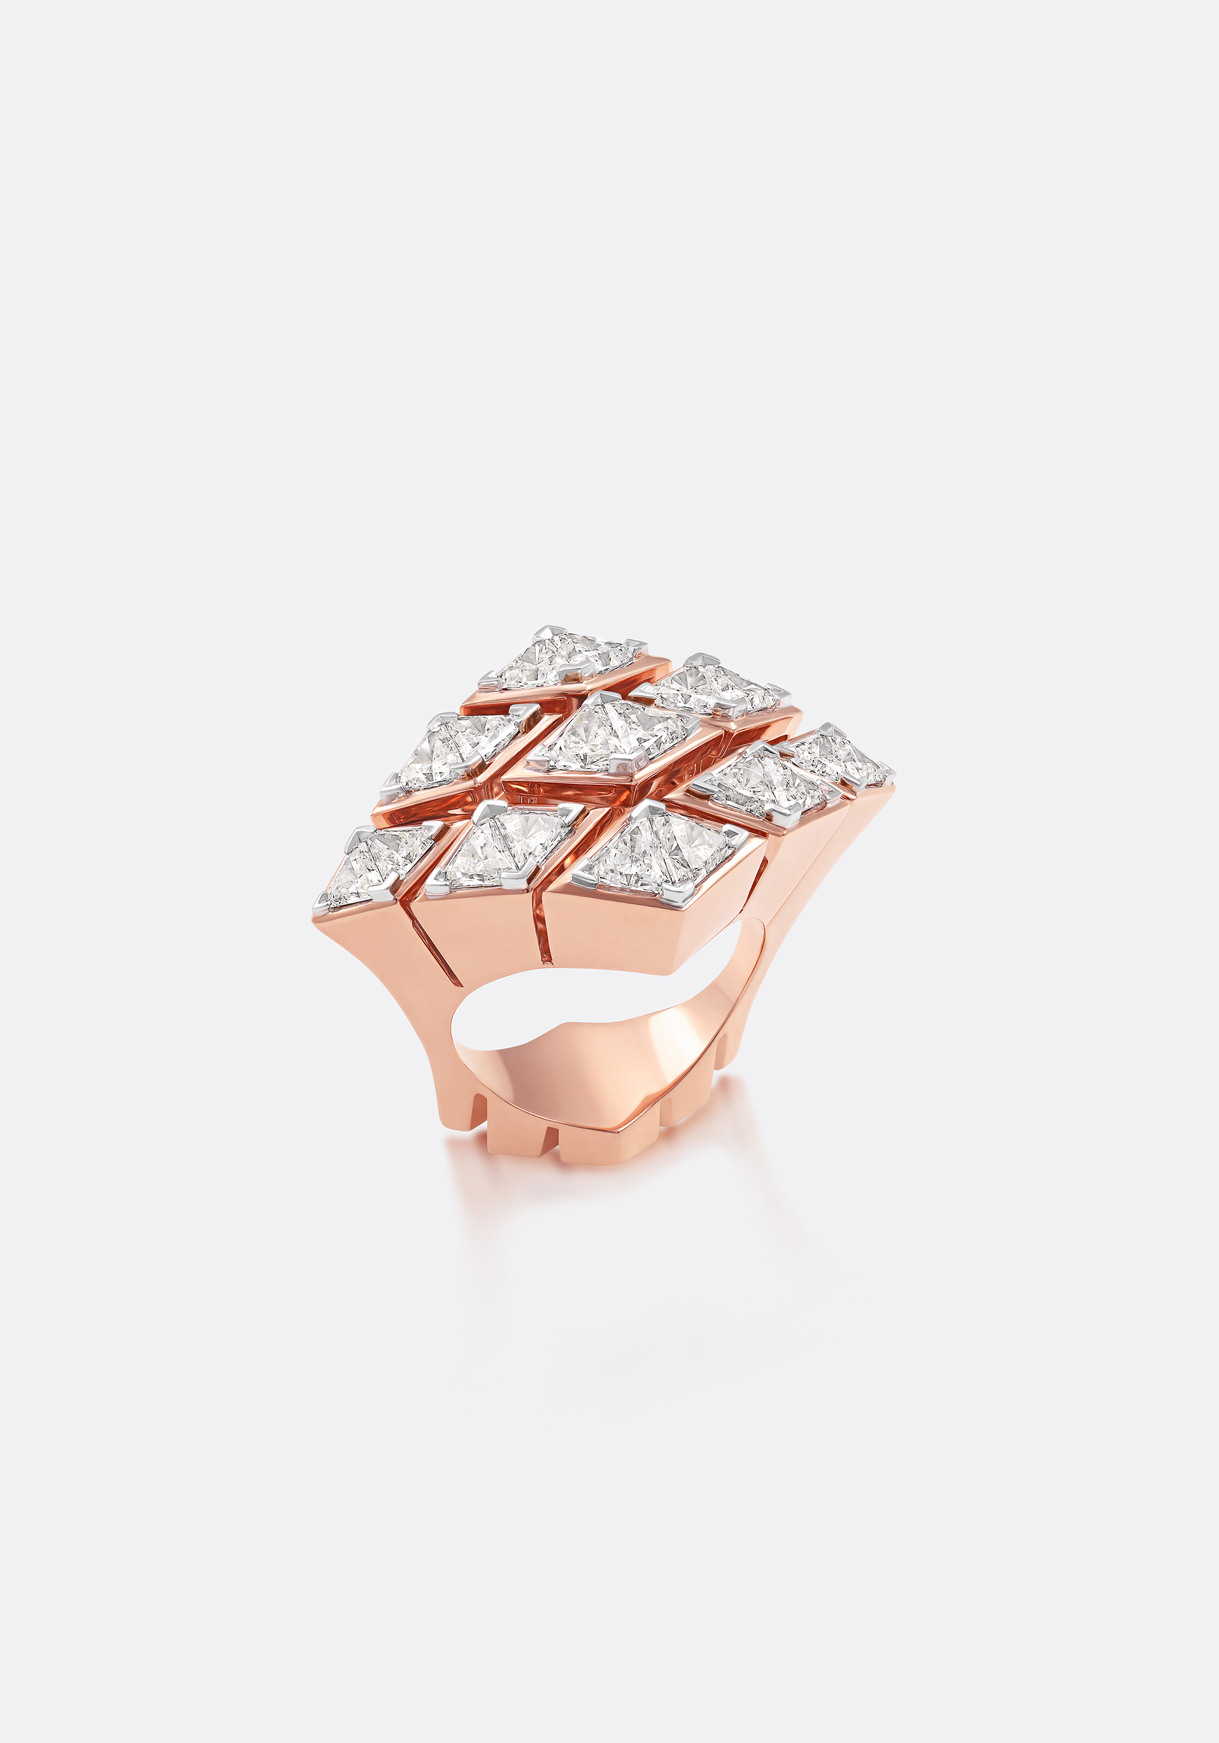 Ring - dramatic edges, extruded metal and bold forms come together.